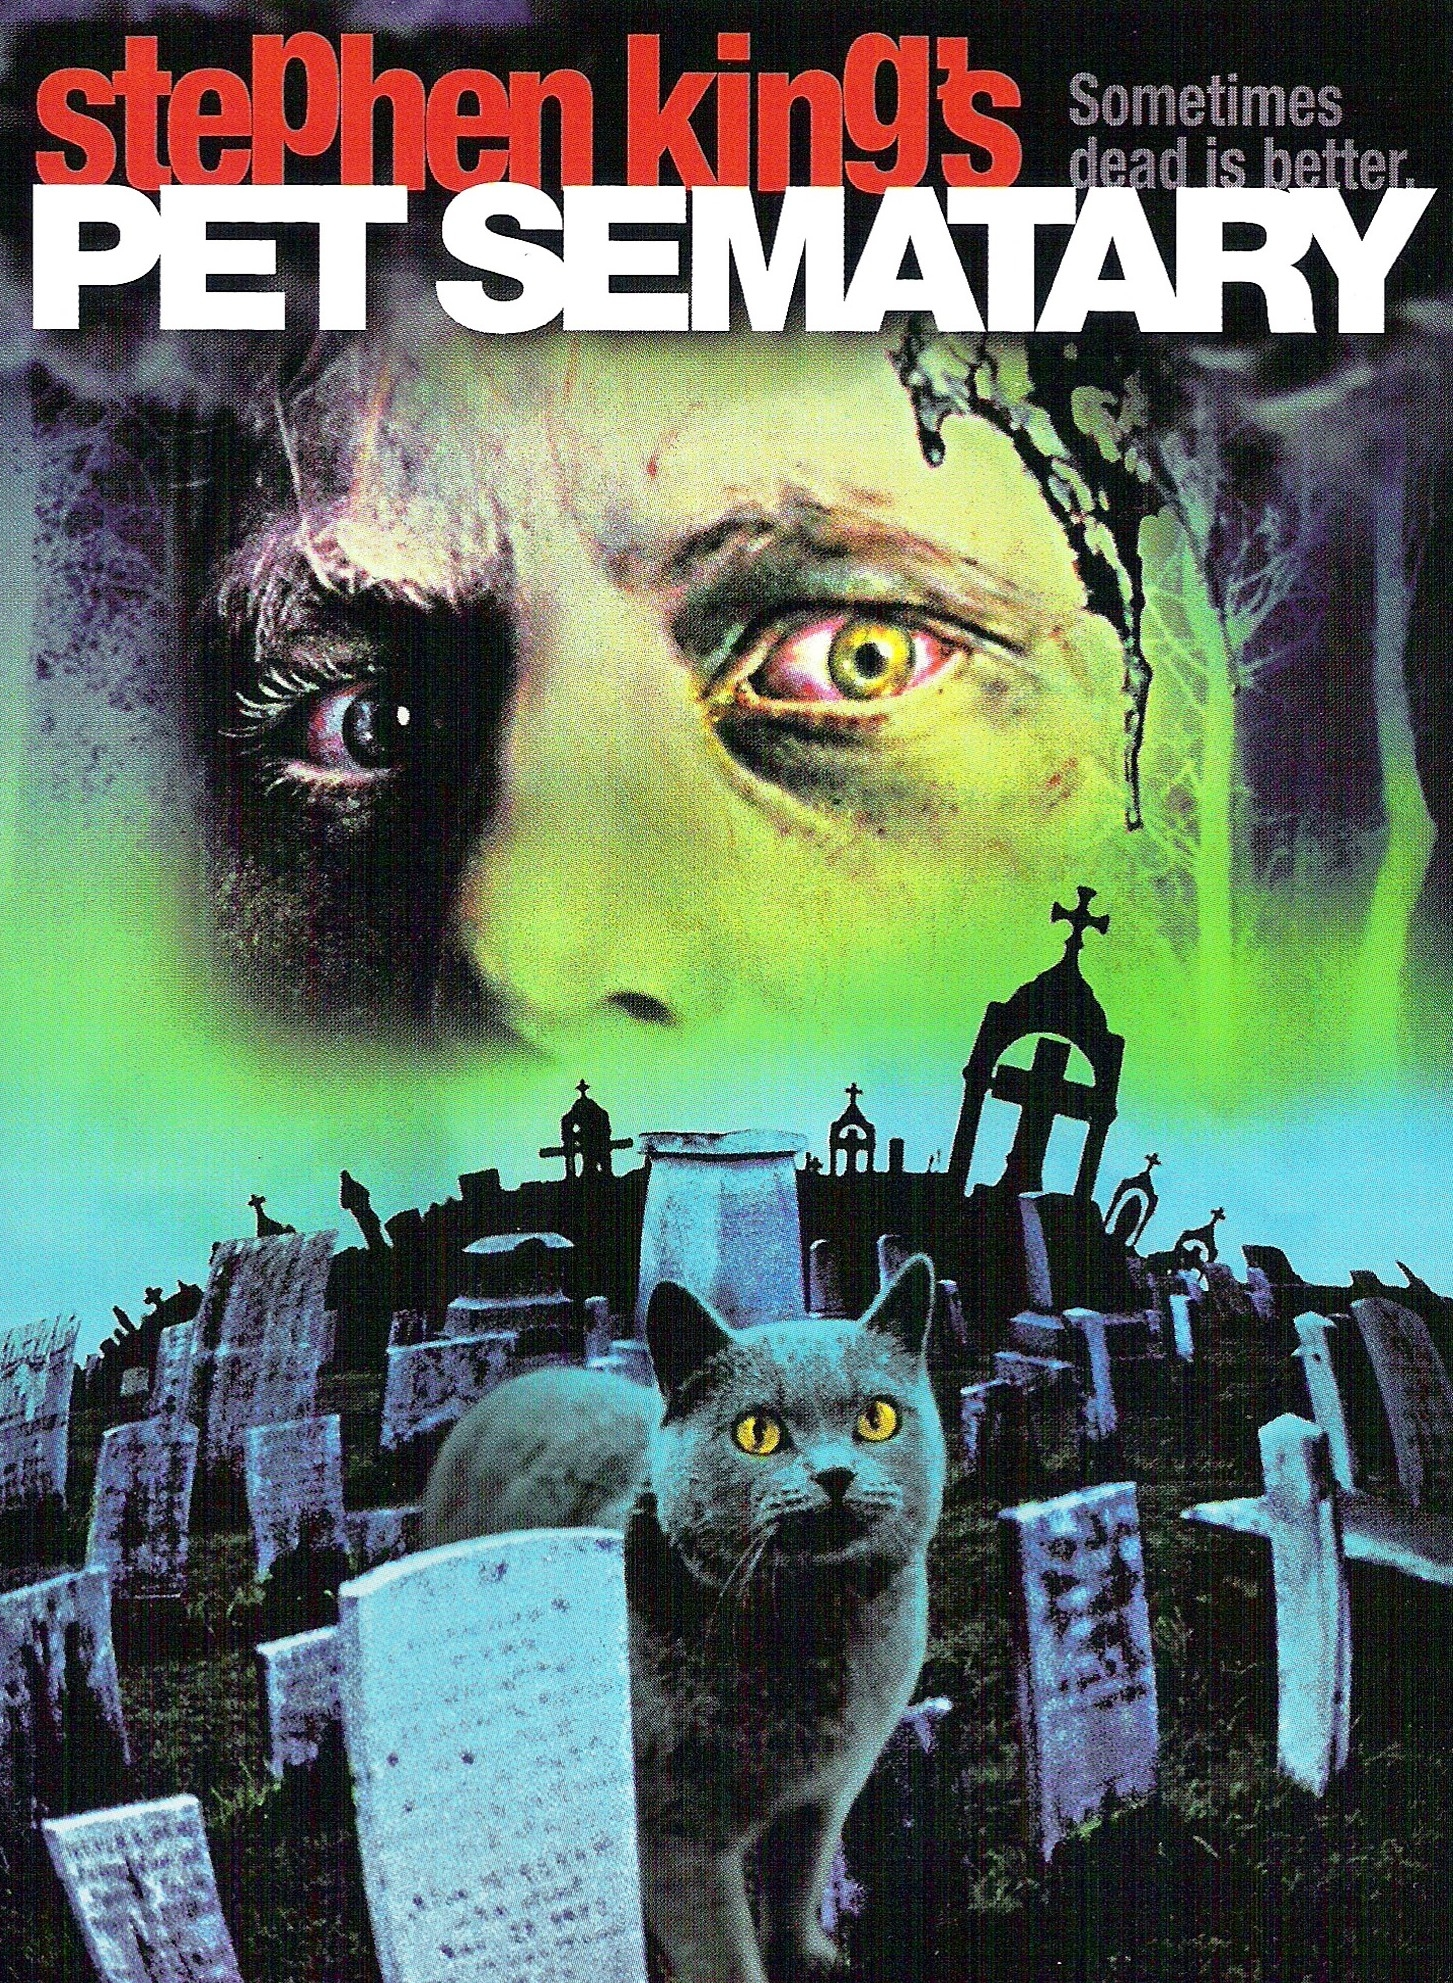 pet sematary essay Following the death of the creed family cat, jud crandall, louis' new neighbour takes louis upto the pet cemetary (throughout the book spelt sematary) to bury the cat.